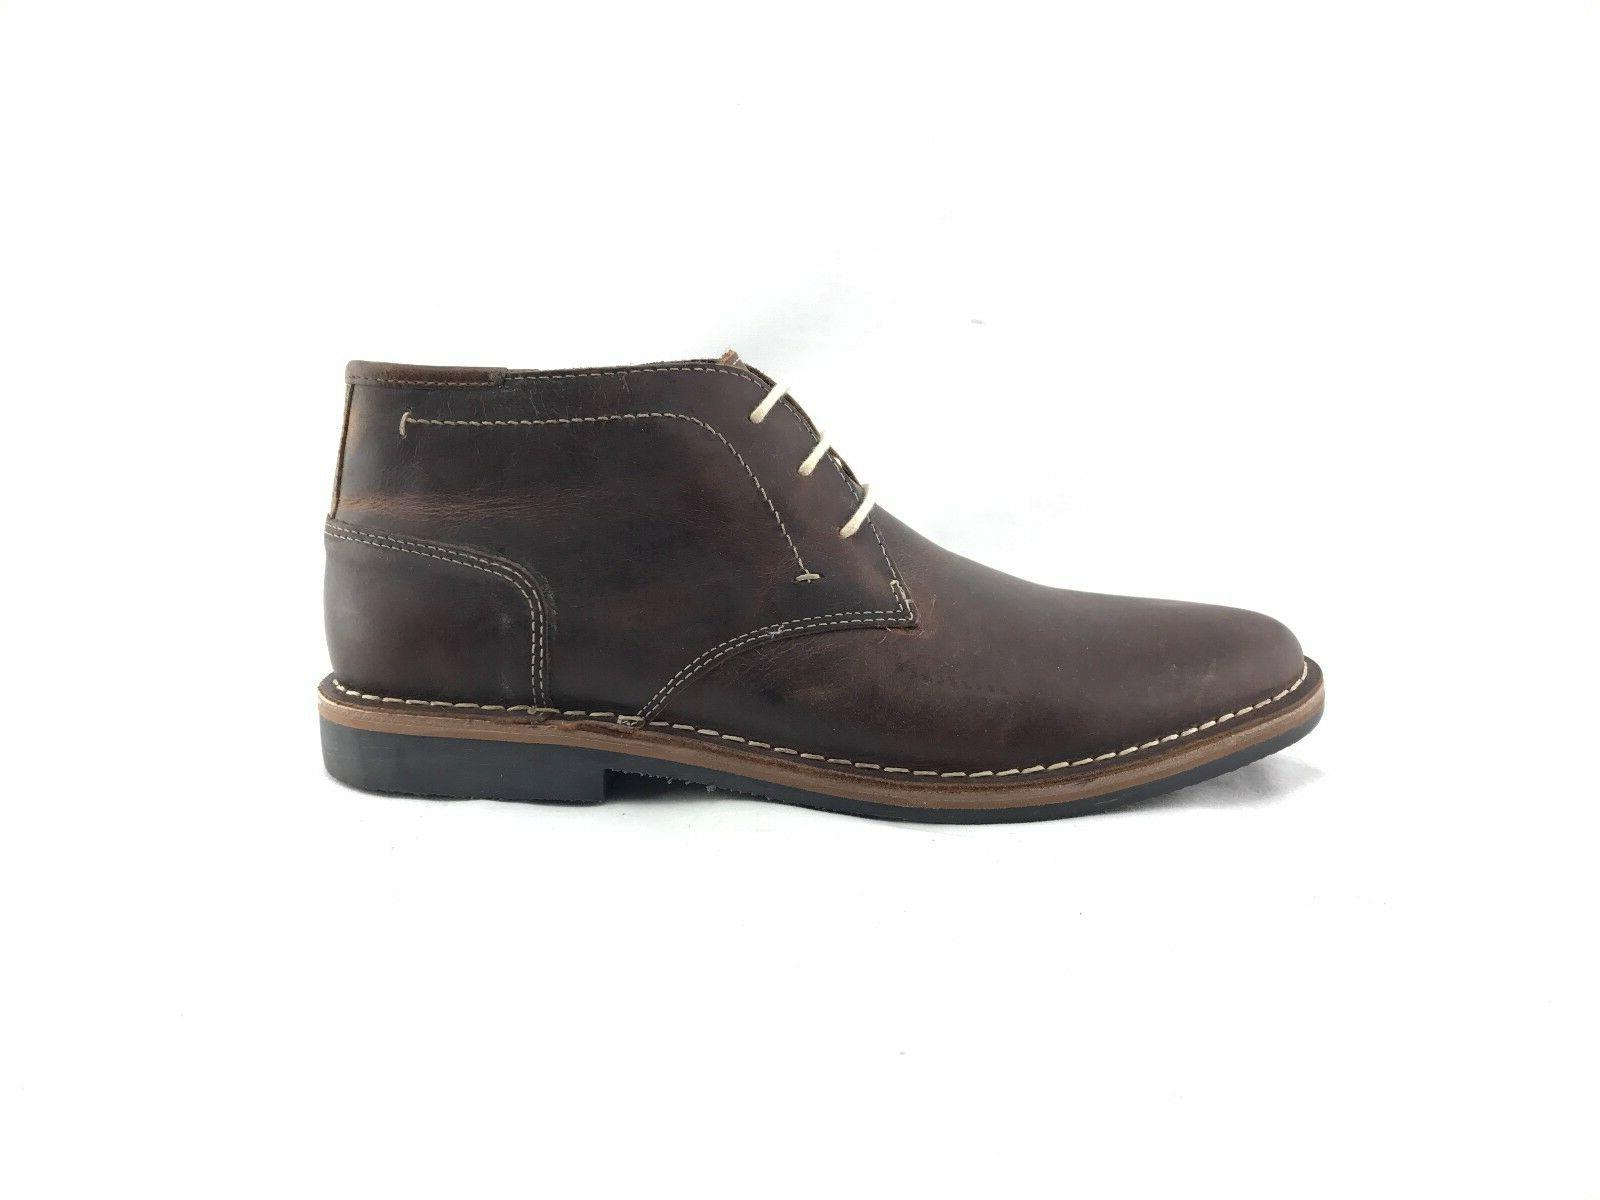 Steve Brown Boots Shoes #A265